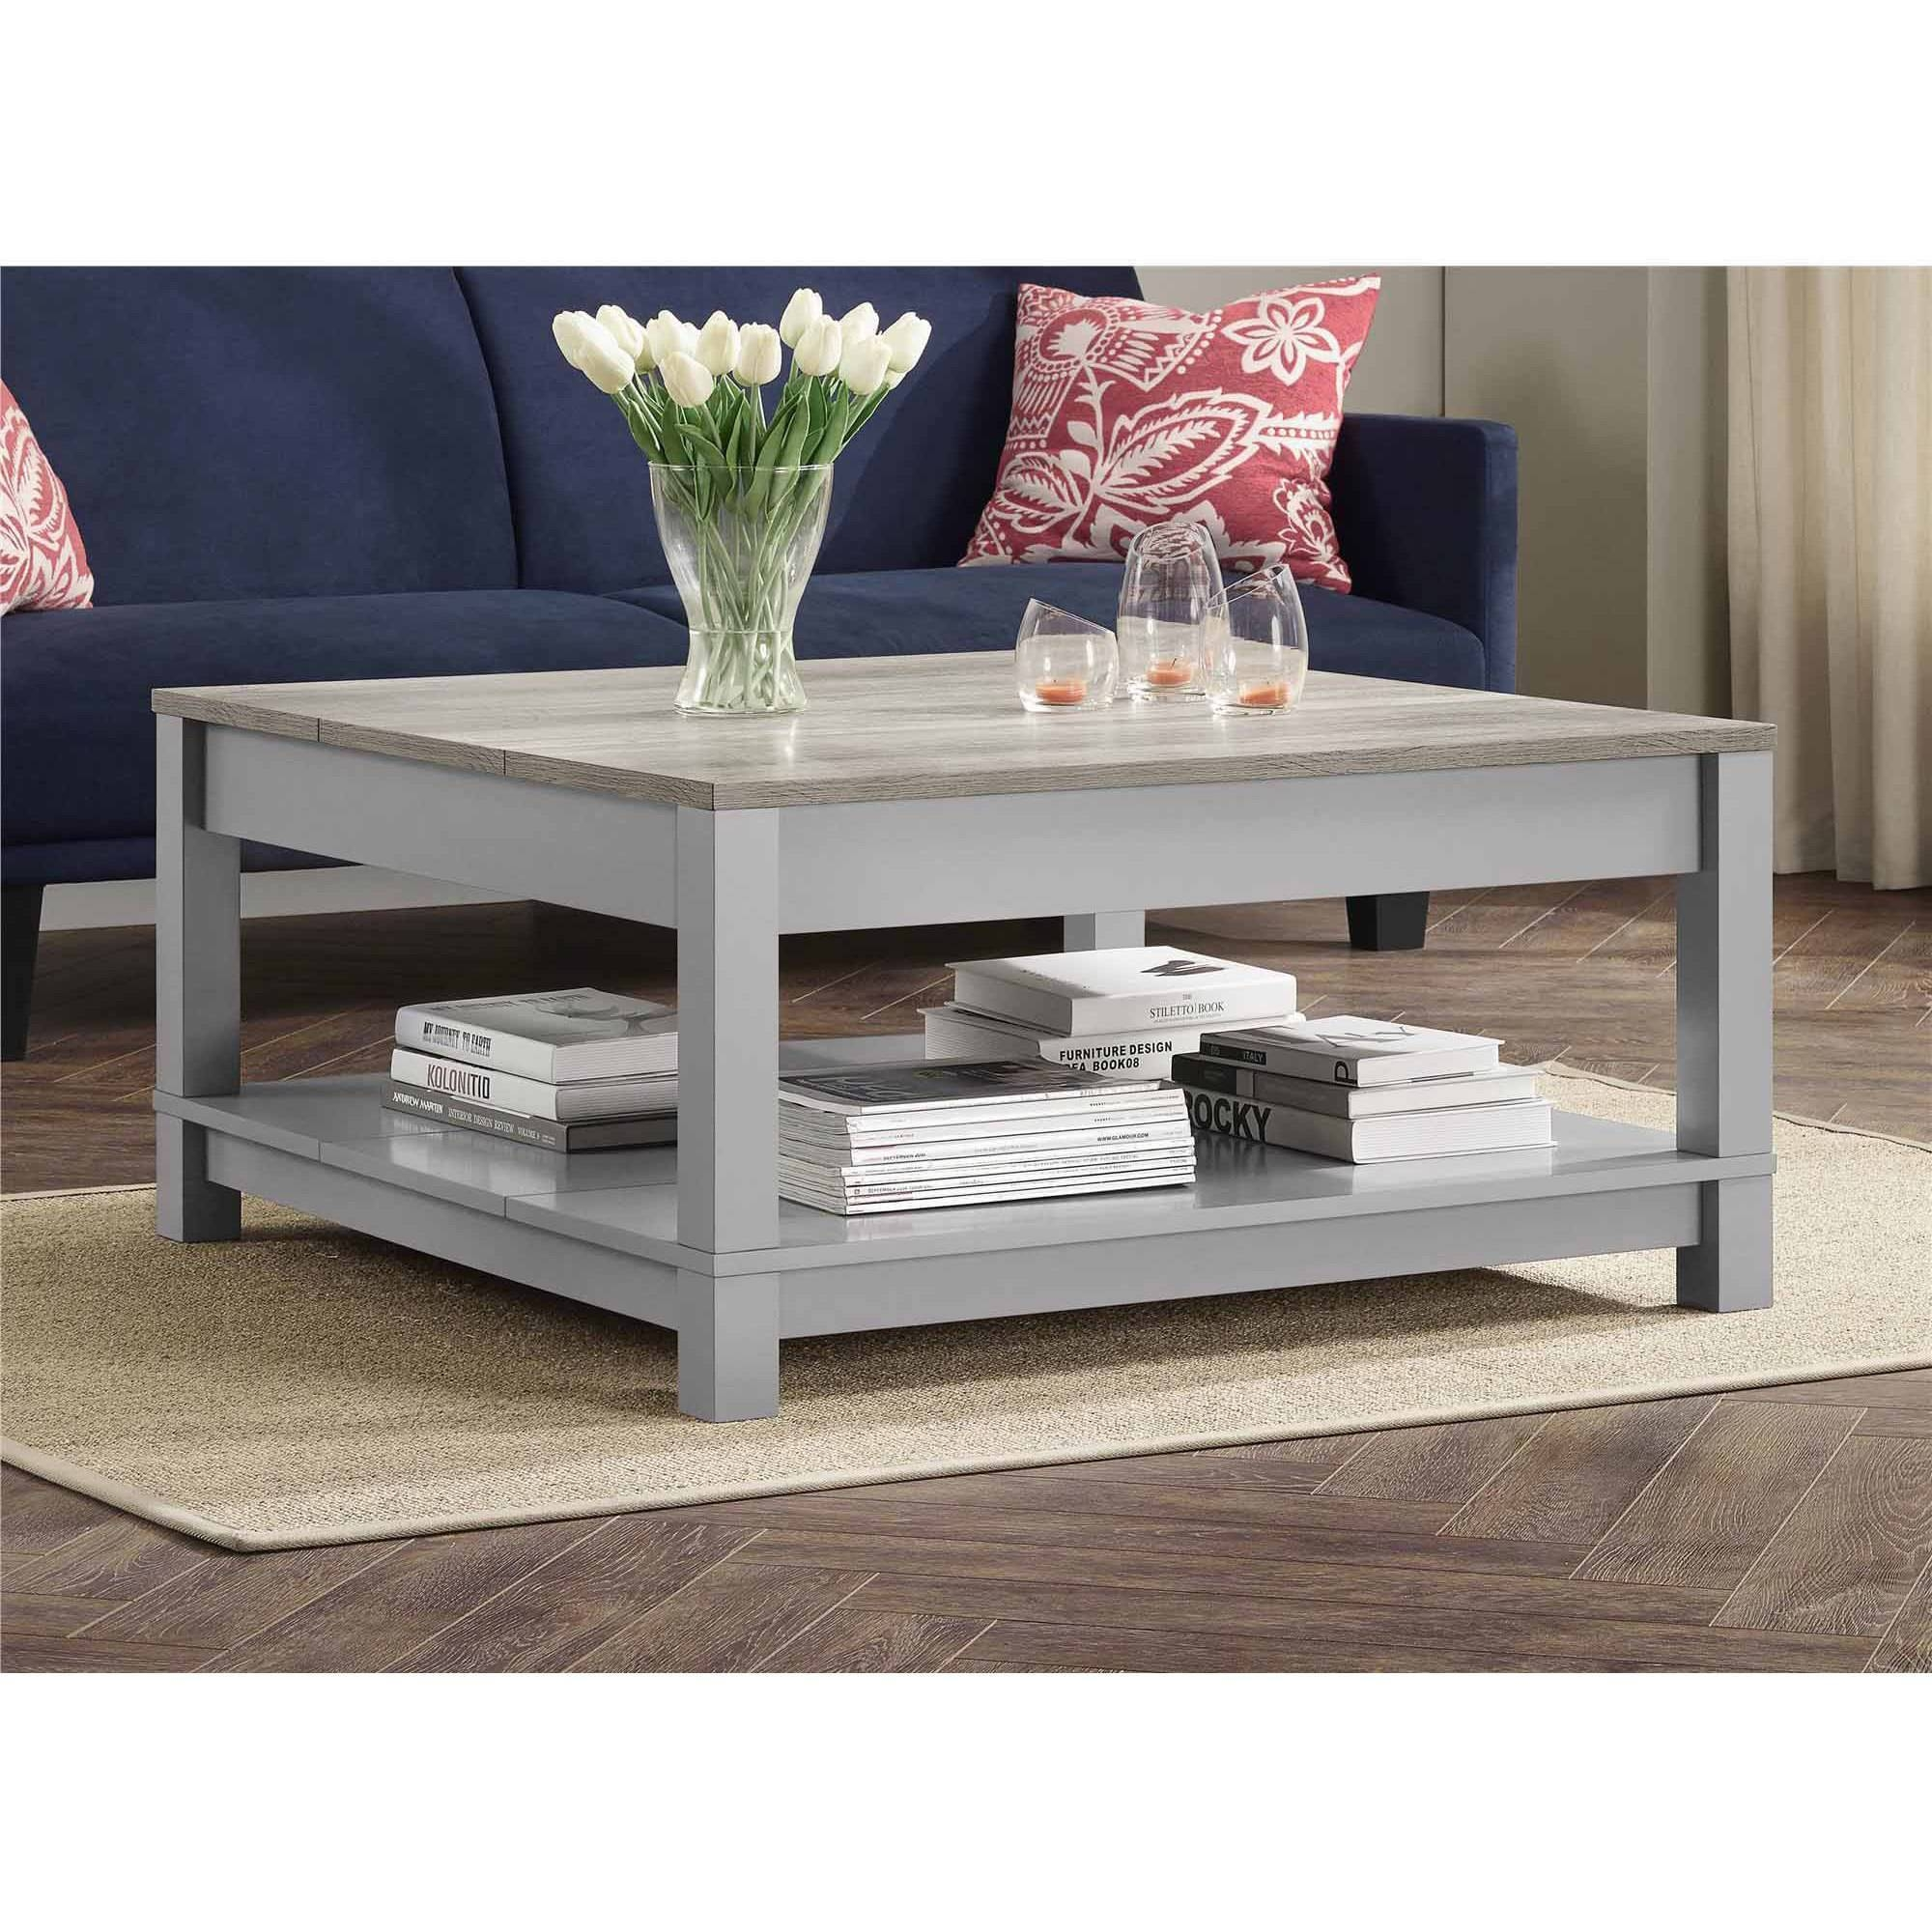 Better Homes And Gardens Langley Bay Coffee Table, Gray/sonoma Oak throughout Grey Wood Coffee Tables (Image 3 of 30)